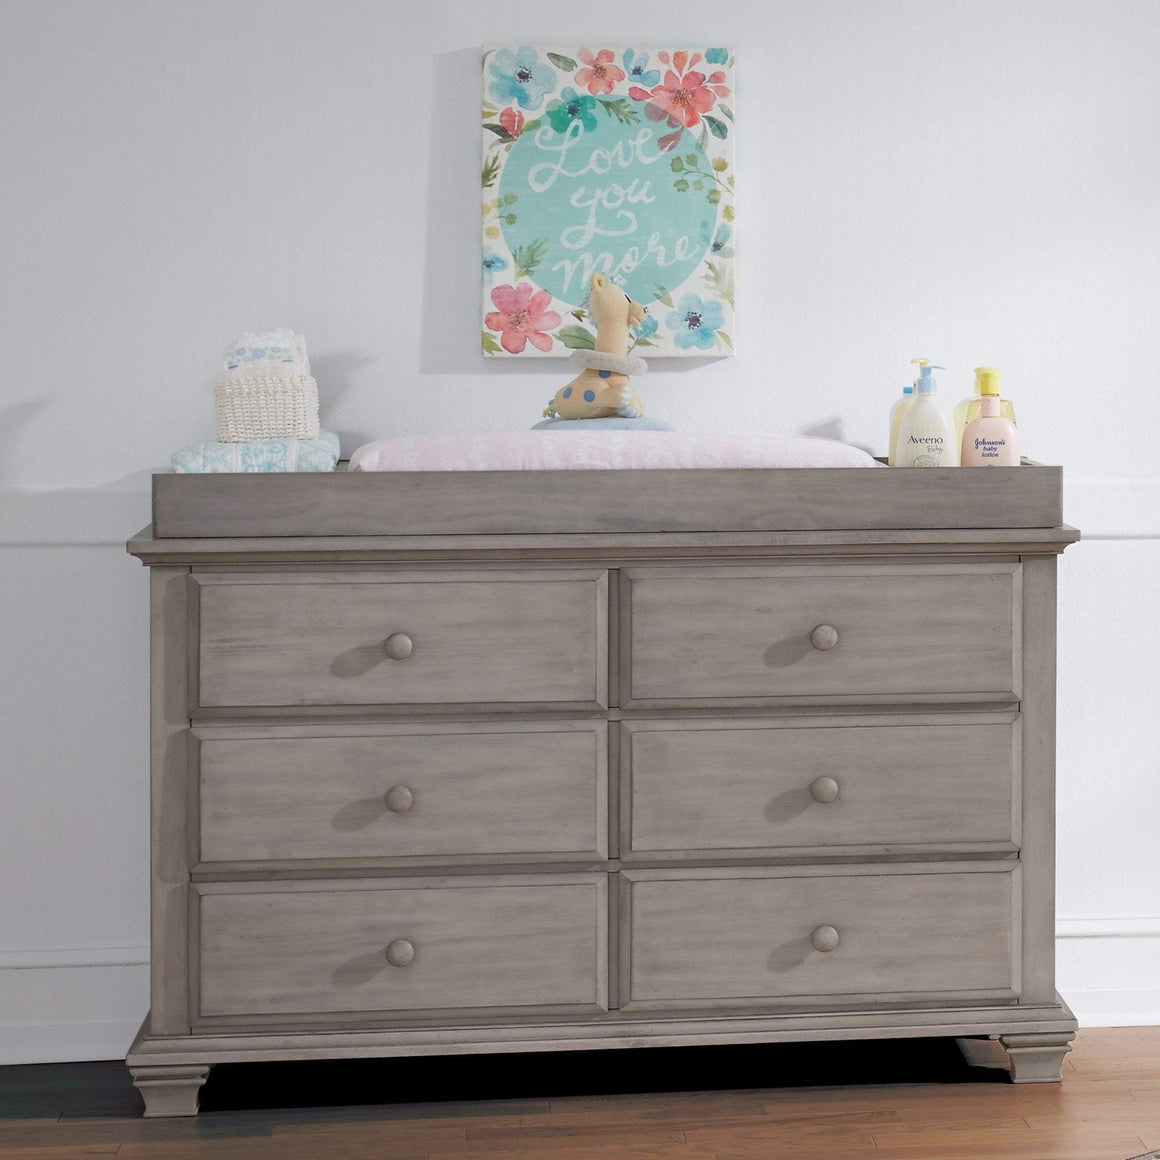 M Design Furniture Oxford Baby by M Design Kenilworth 6 Drawer Dresser Stone Wash